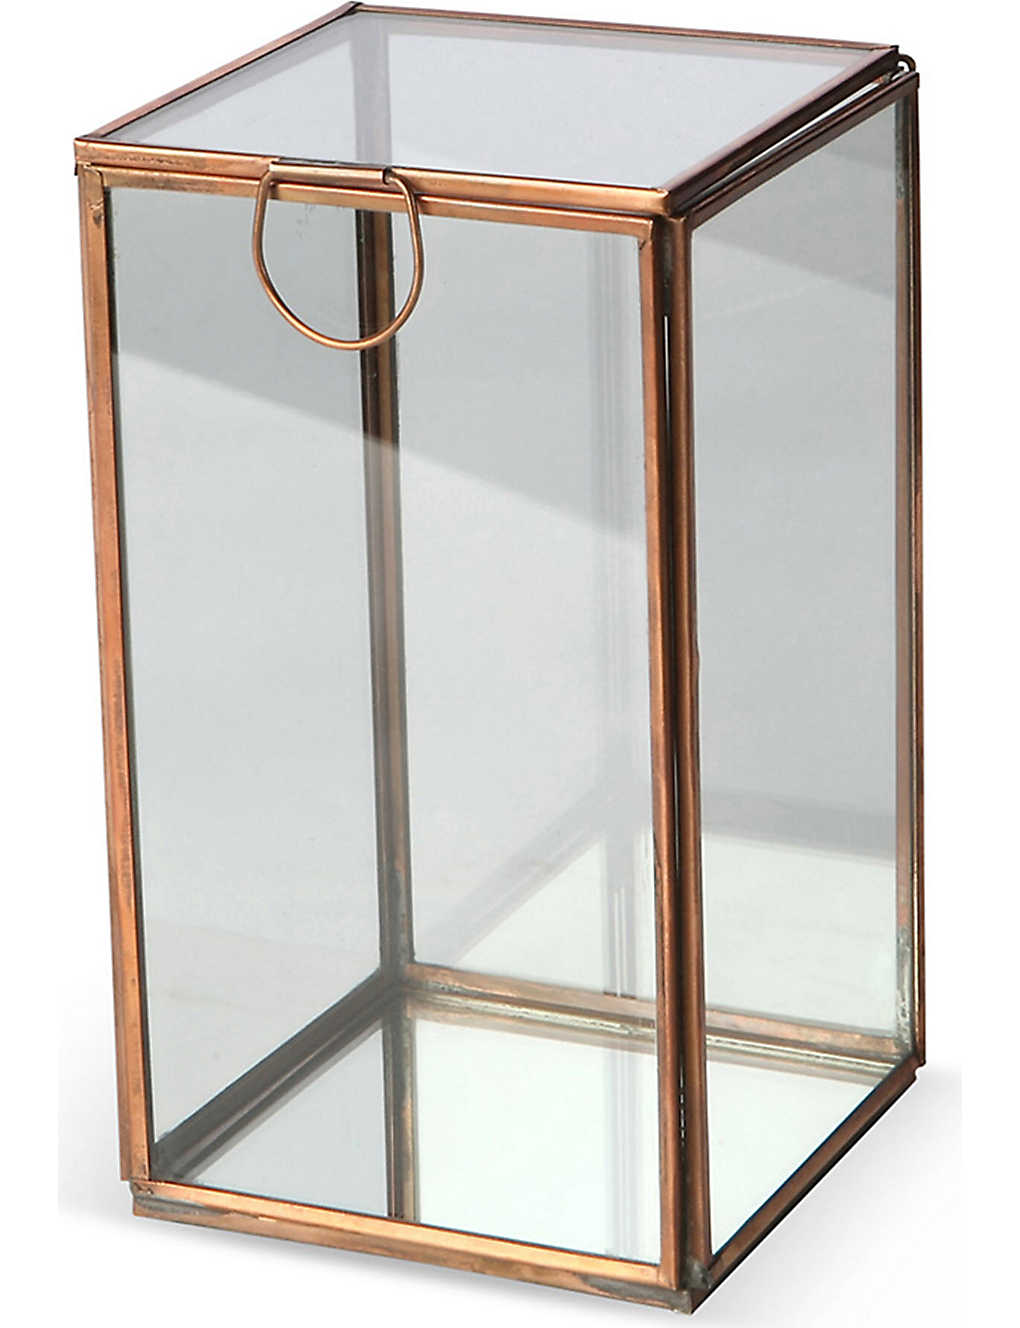 CULINARY CONCEPTS - Glasshouse medium copper candle holder